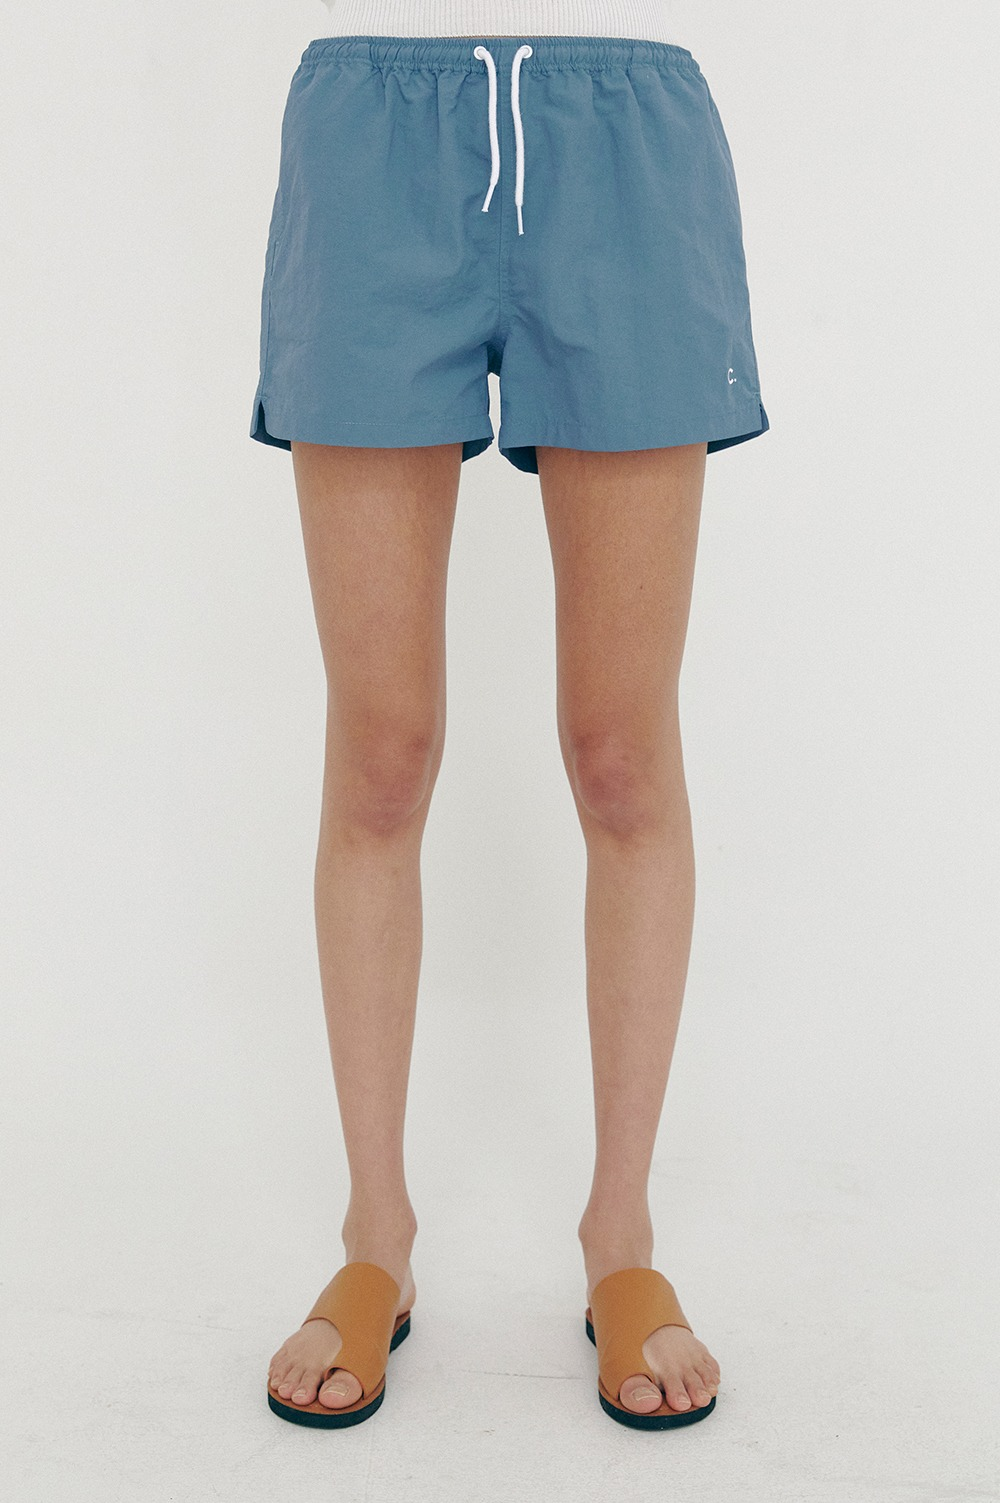 clove - [SS21 clove] New Summer Shorts_Women Blue